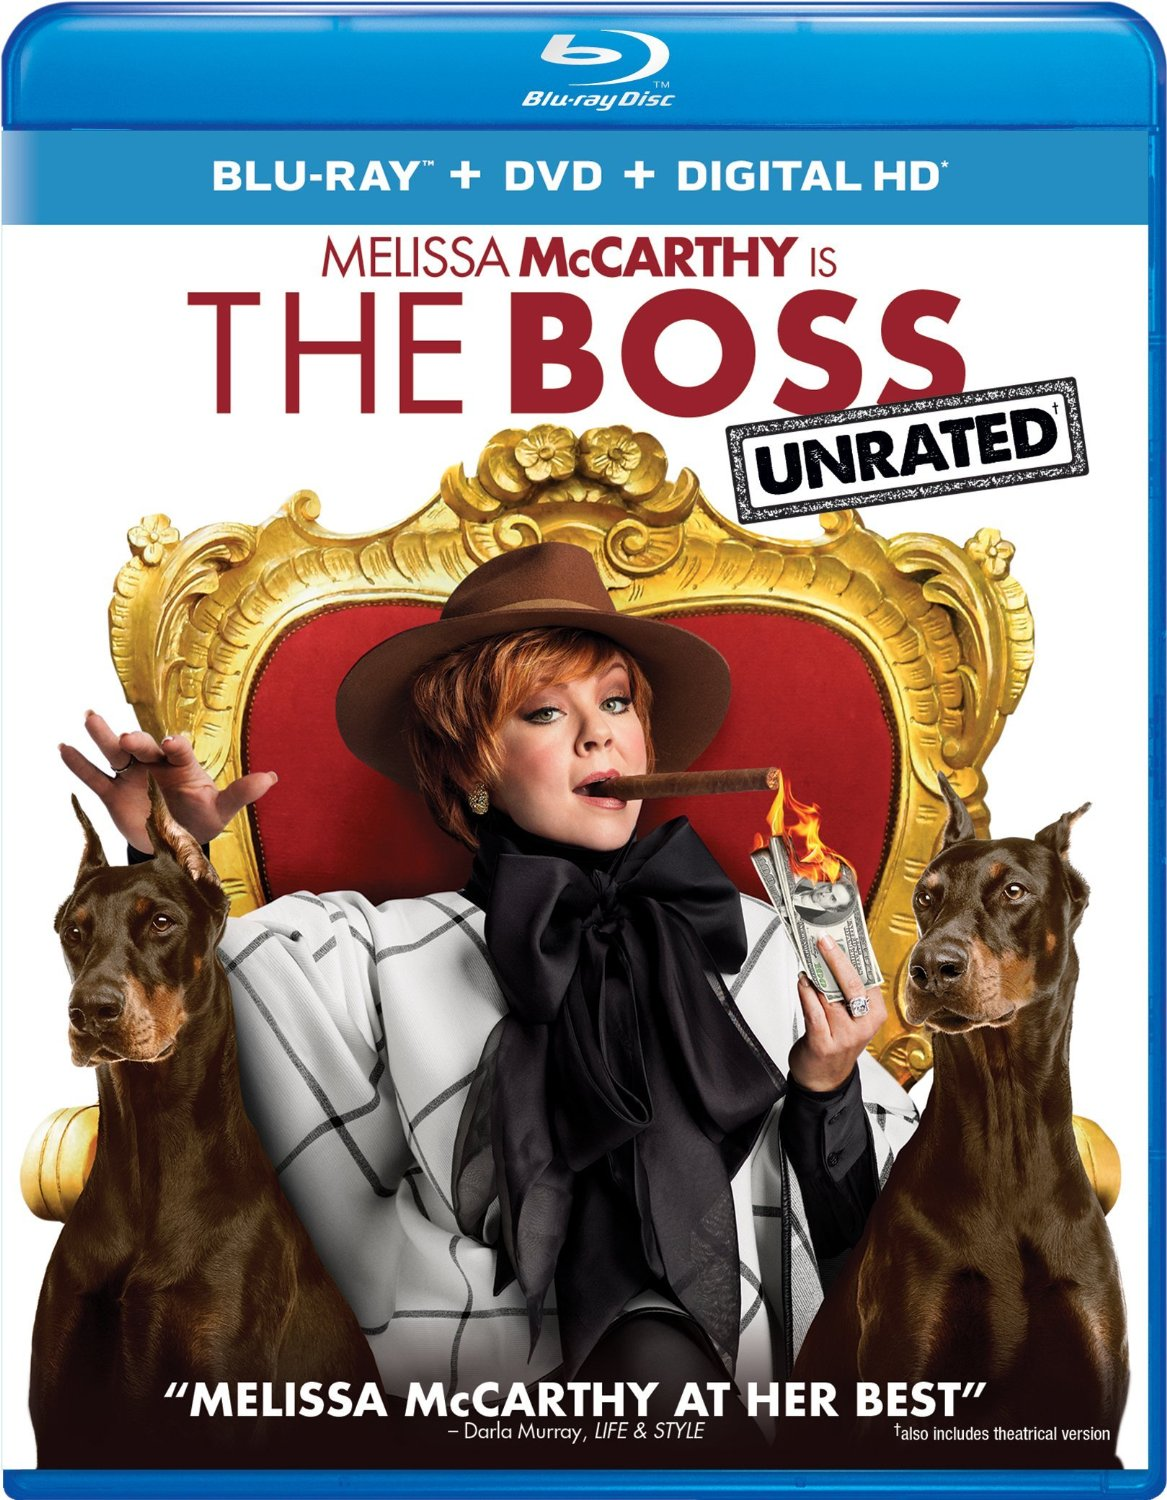 The Boss [Movie] - The Boss (Unrated)